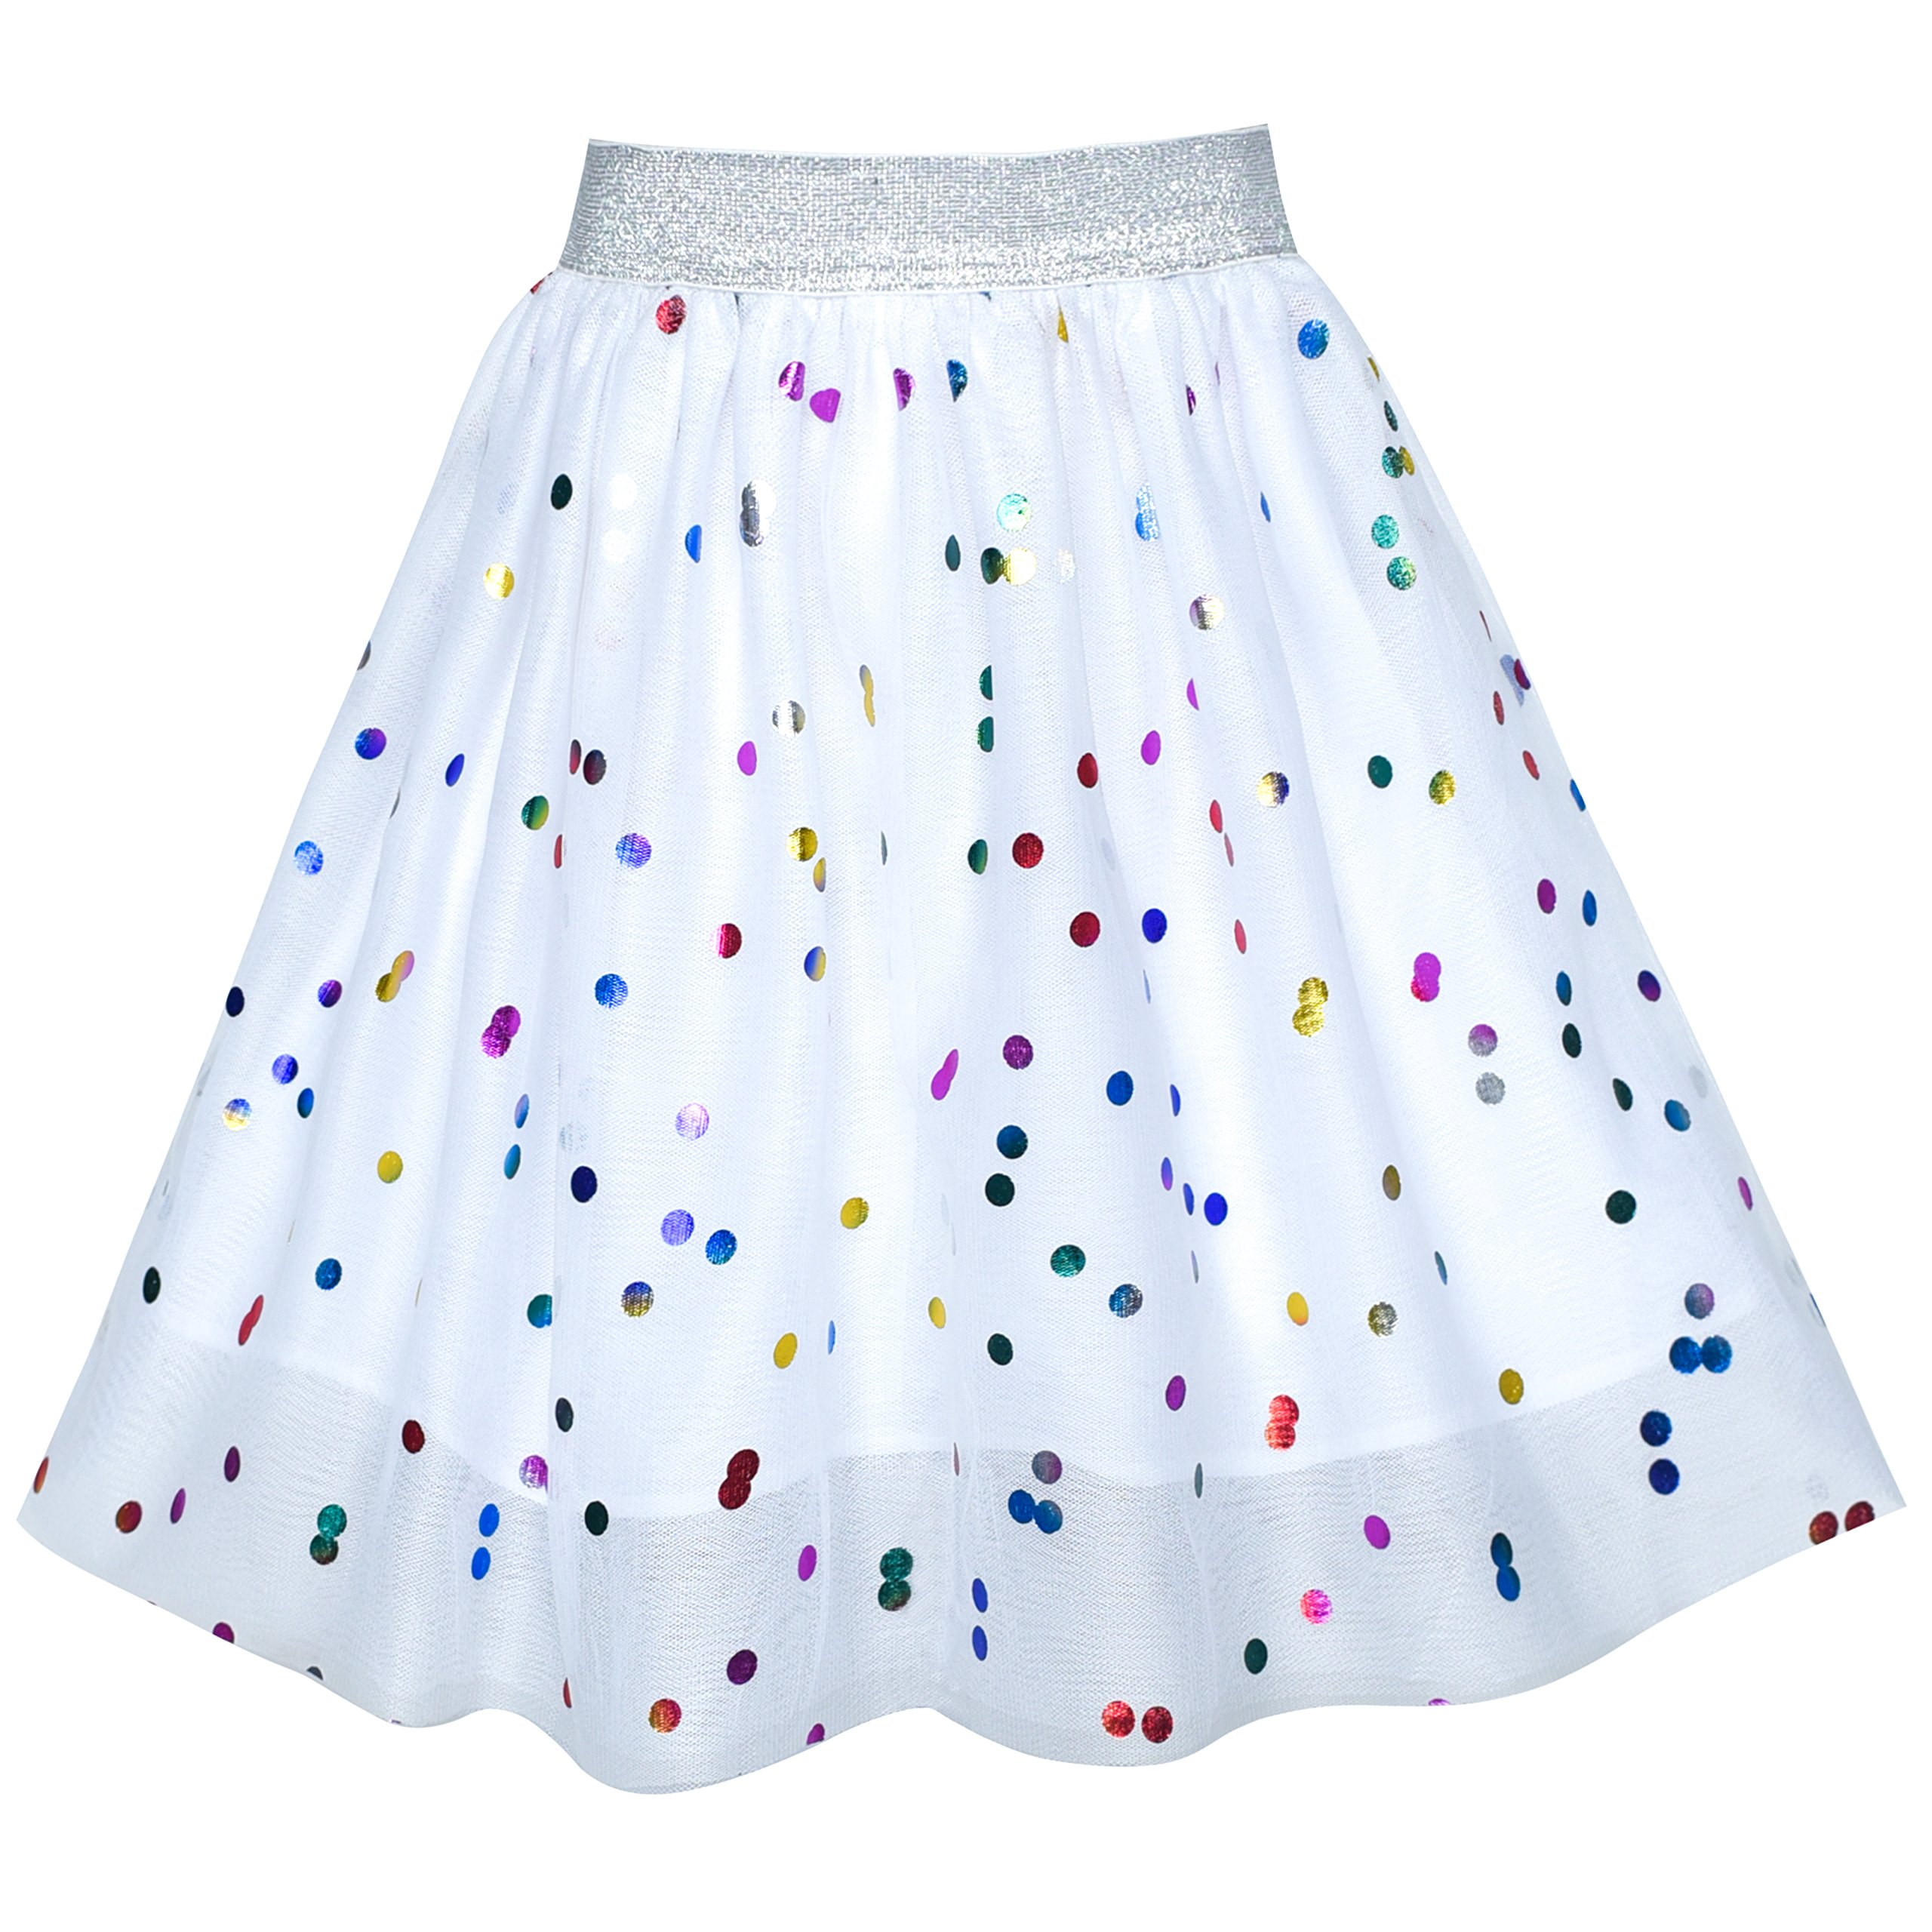 Girls Skirt Colorful Sequins Sparkling White Tutu Dancing Size 9-10